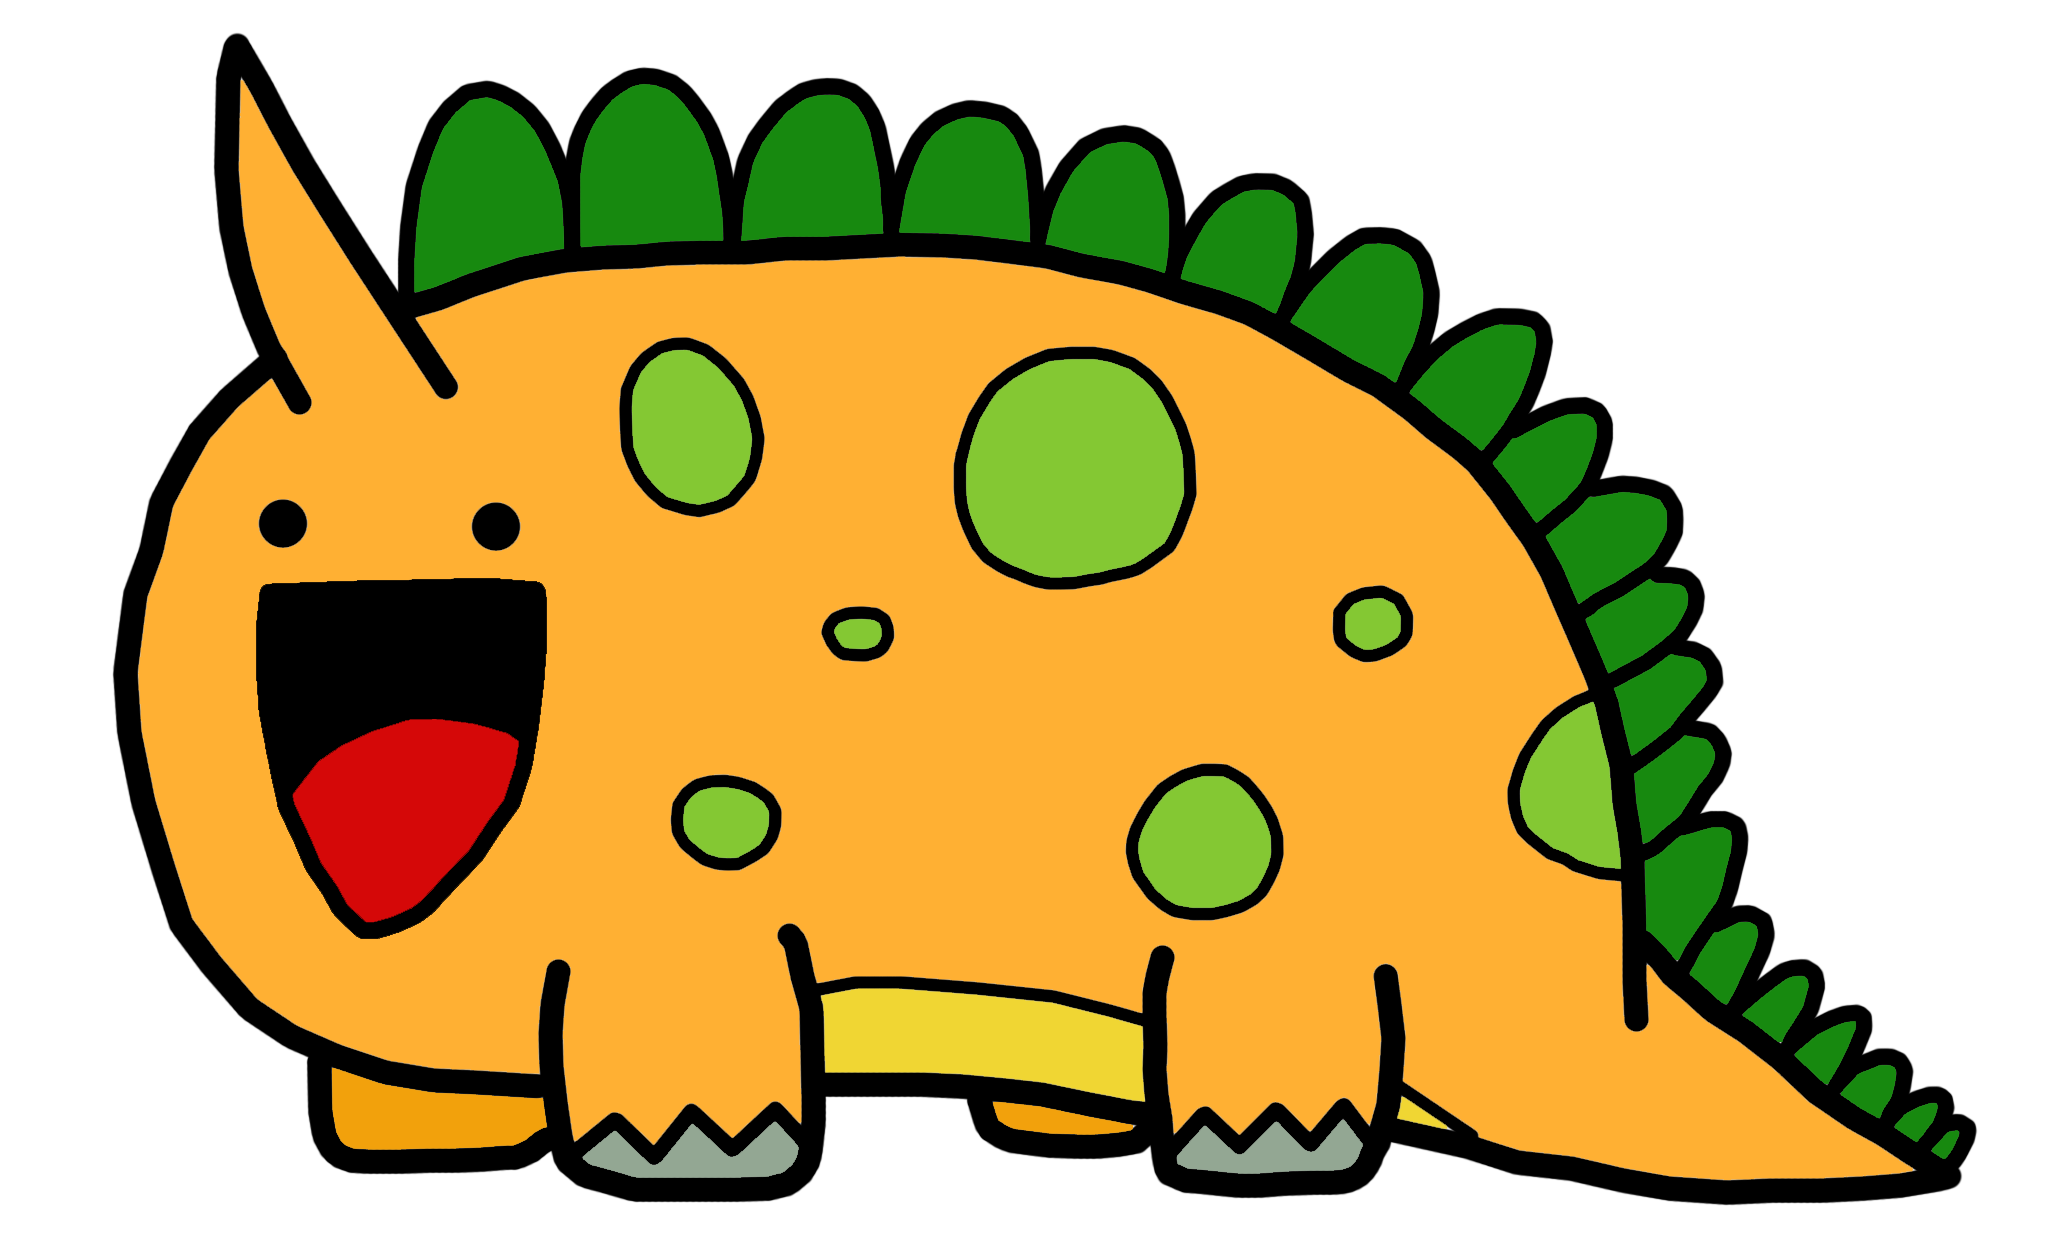 Planet clipart adorable. Cute dinosaur library free